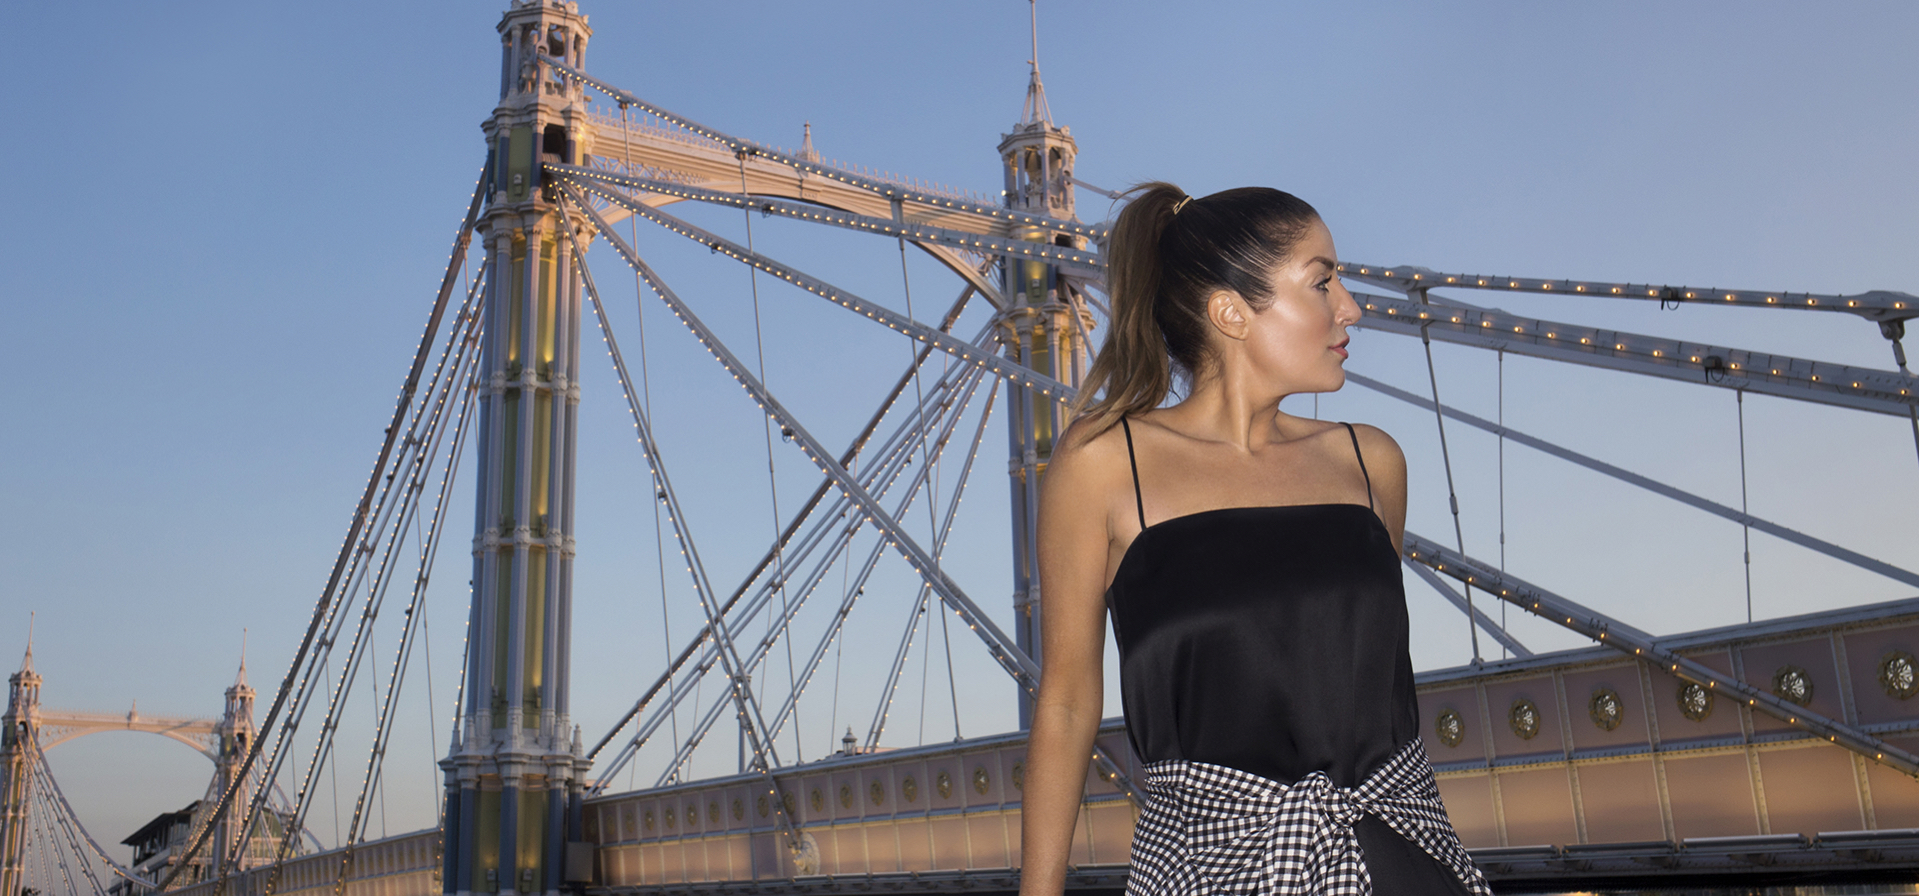 Taylor in a black dress standing in front of a bridge